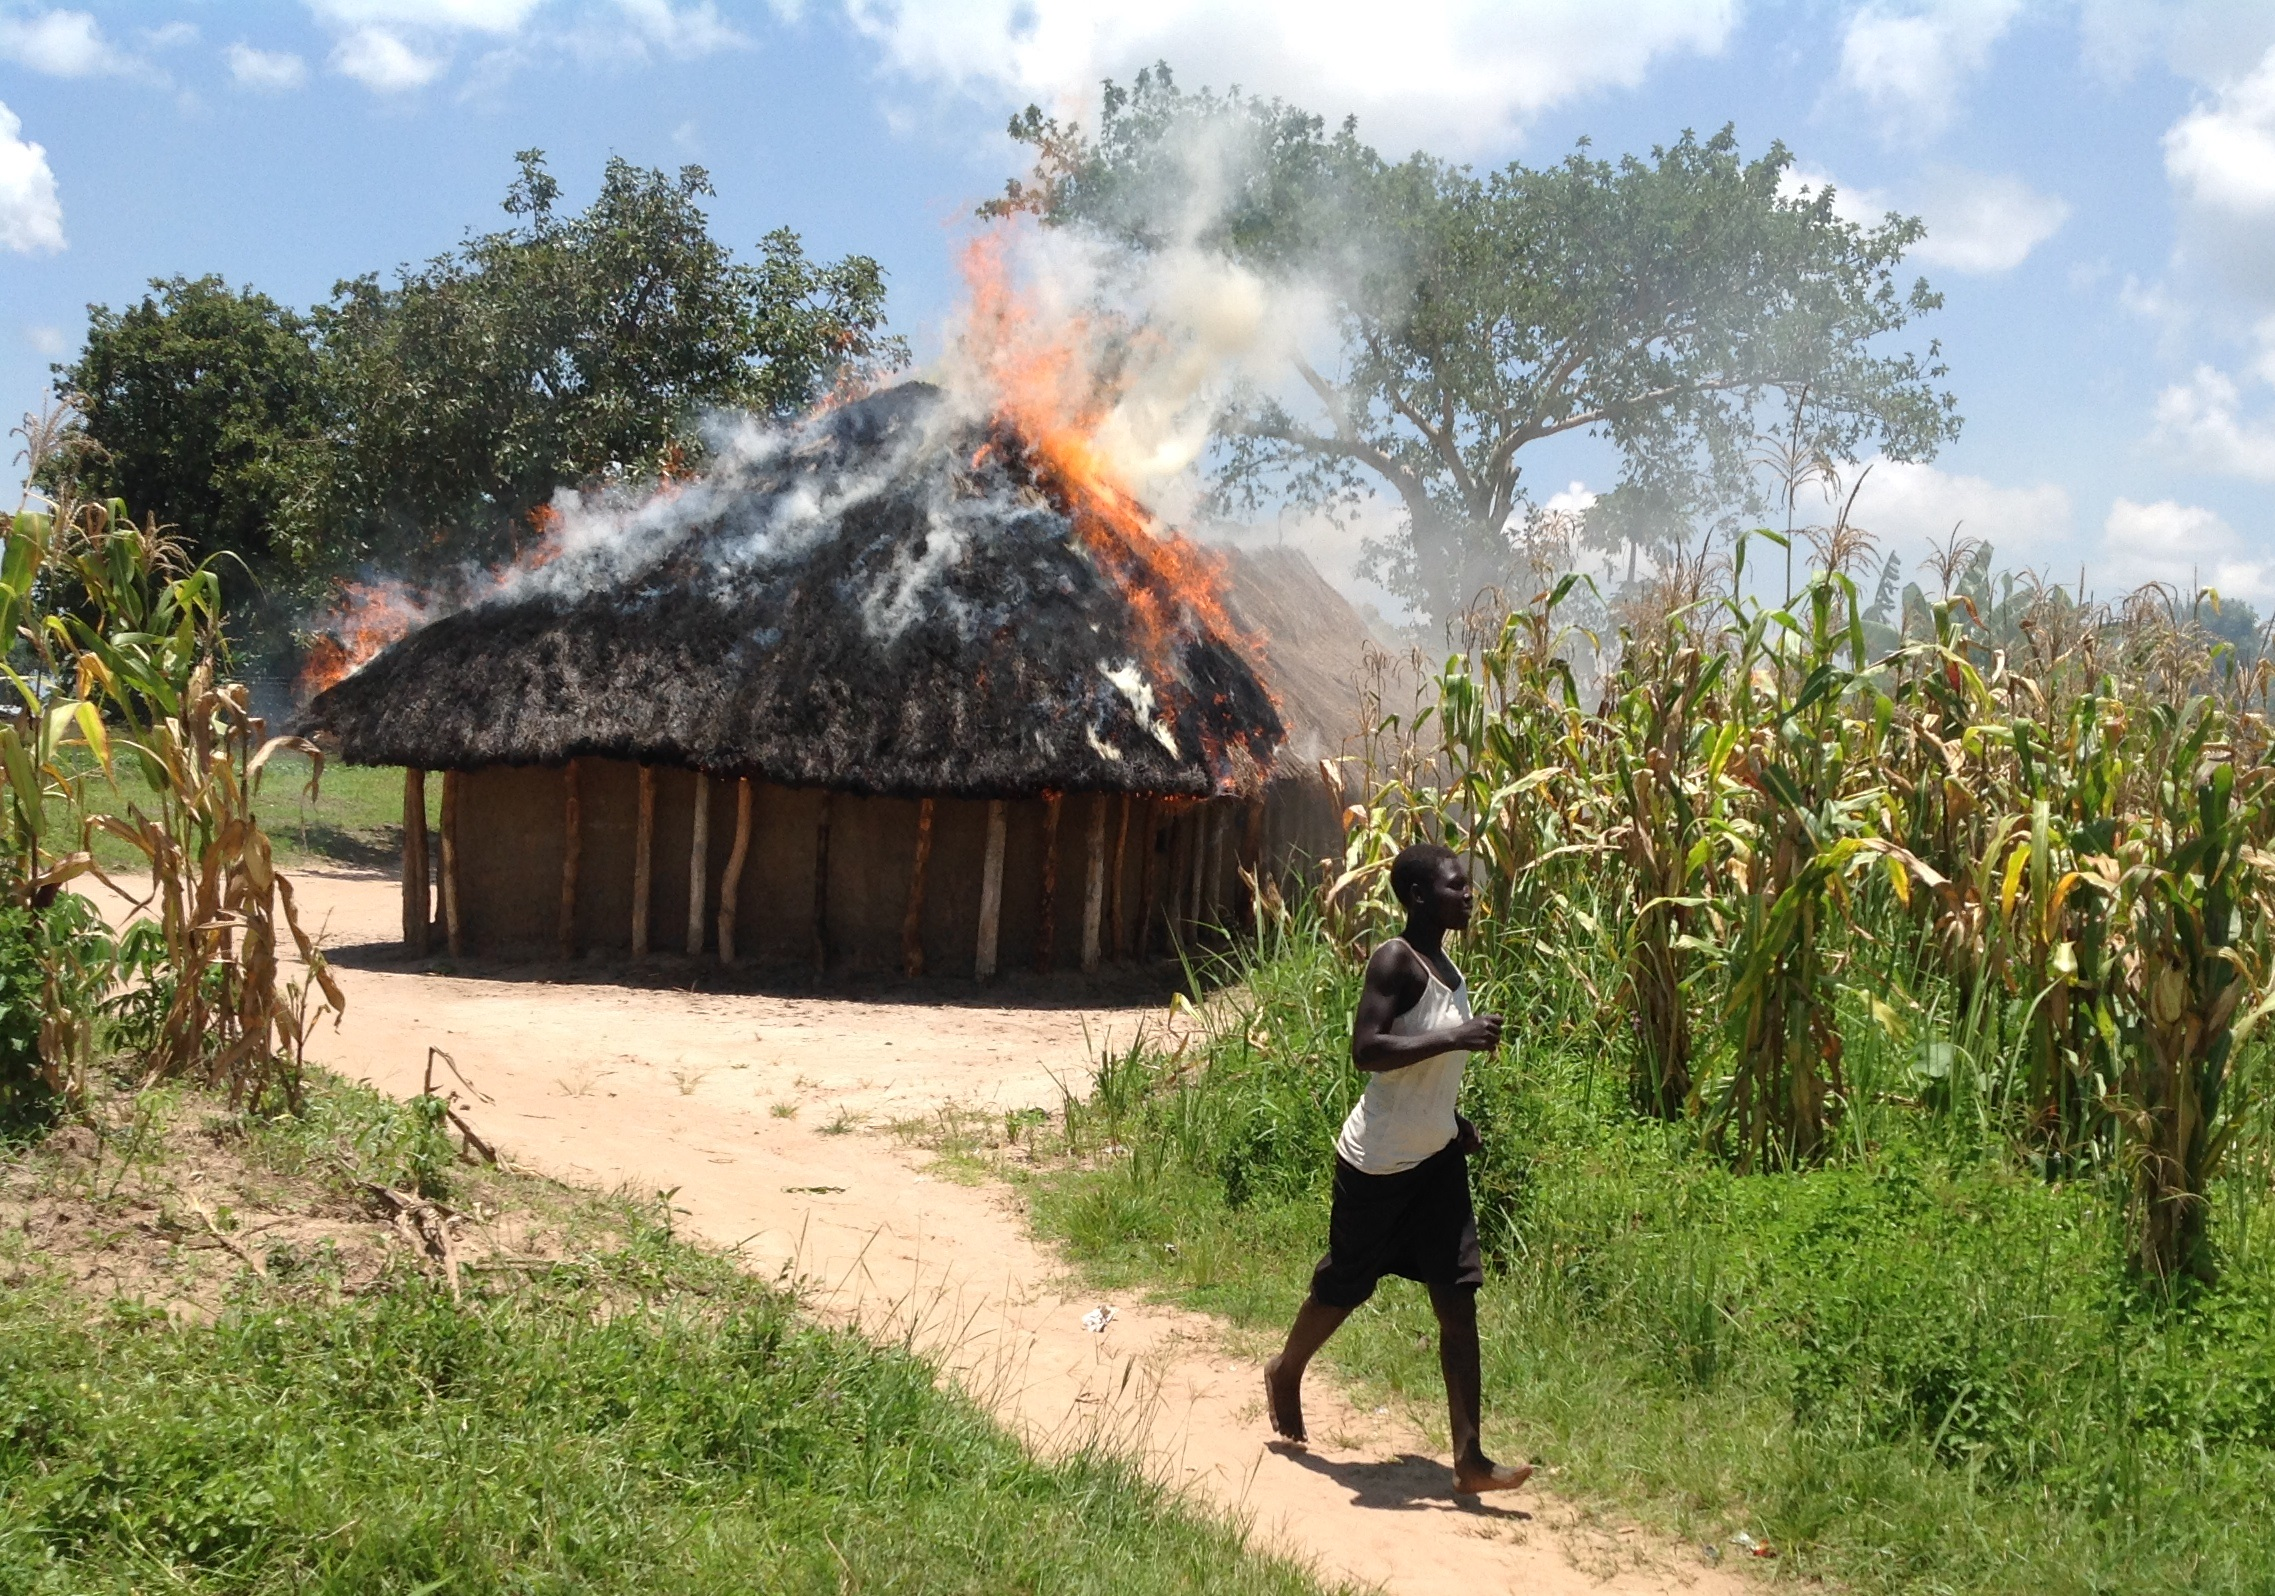 Moyo burning hut